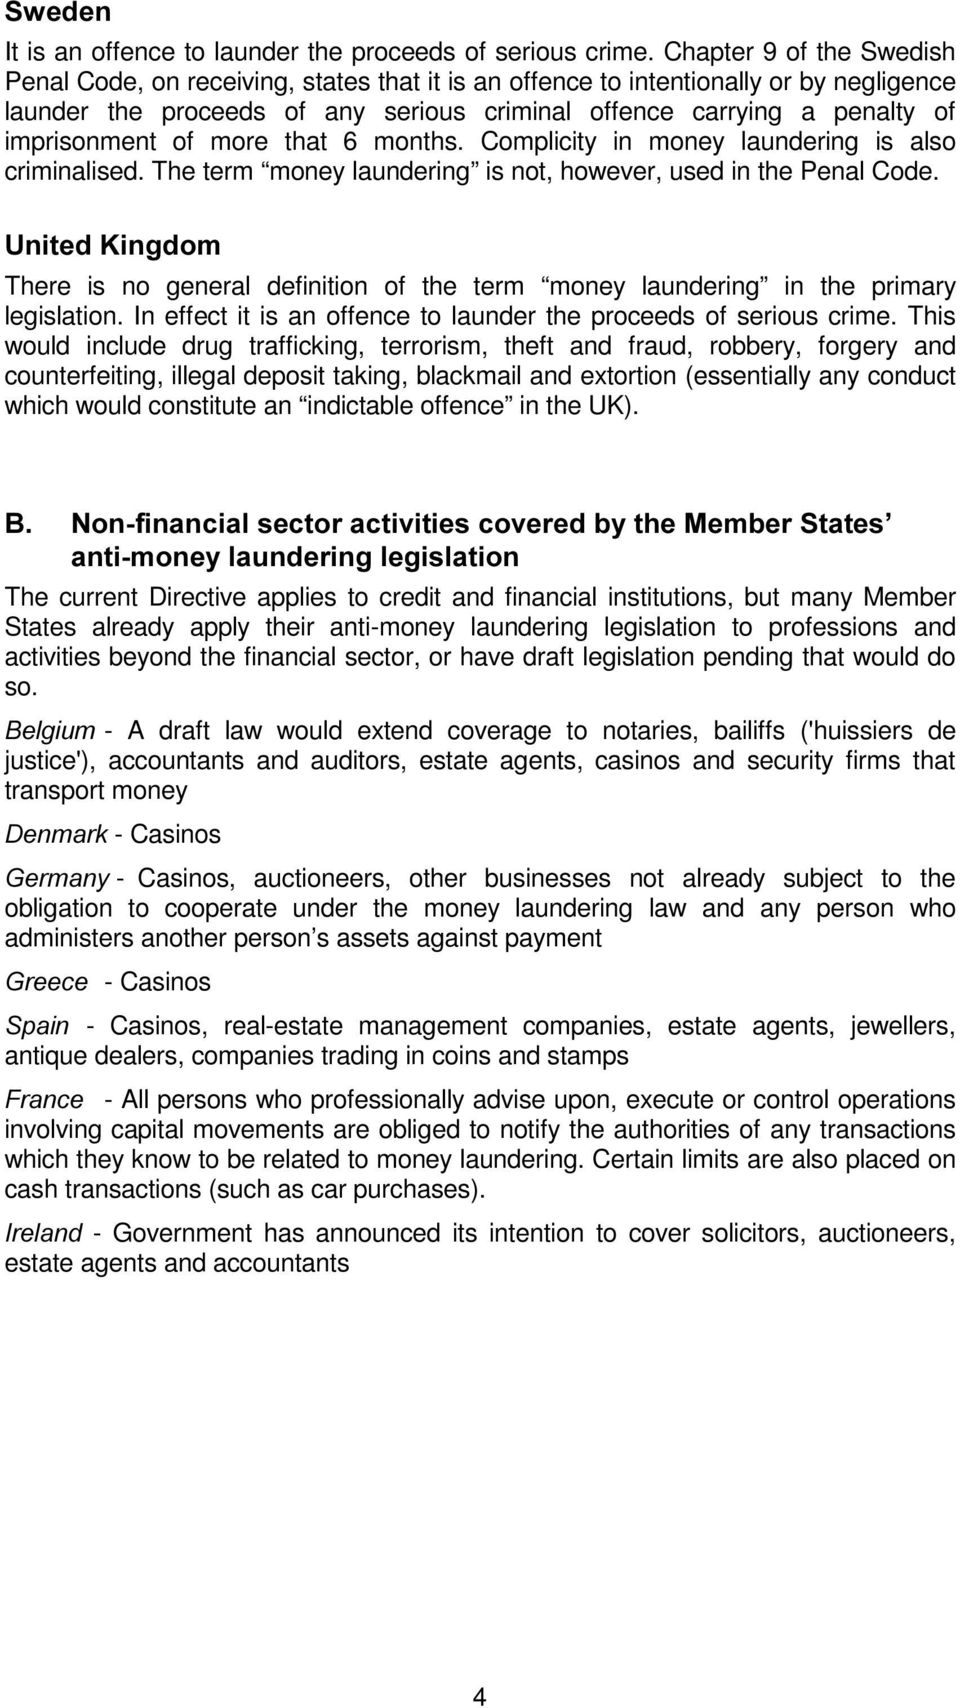 imprisonment of more that 6 months. Complicity in money laundering is also criminalised. The term money laundering is not, however, used in the Penal Code.